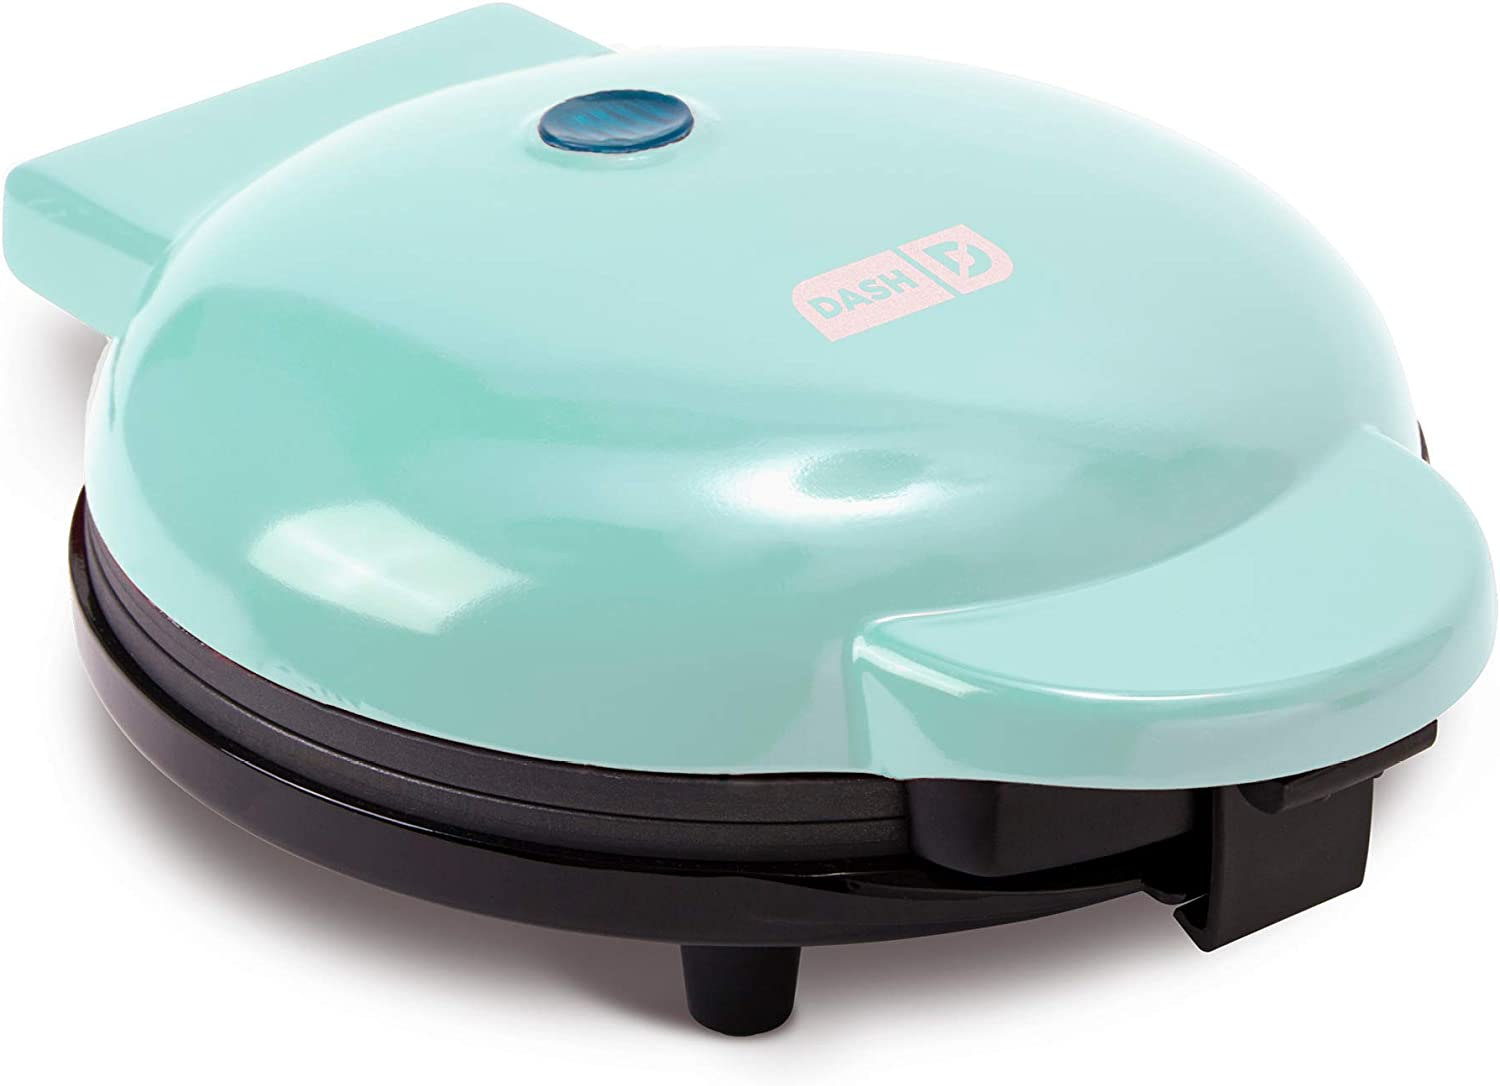 """Dash DEWM8100AQ Express 8"""" Waffle Maker Machine for Individual Servings, Paninis, Hash browns + other on the go Breakfast, Lunch, or Snacks with Easy Clean, Non-Stick Sides Aqua (Renewed)"""